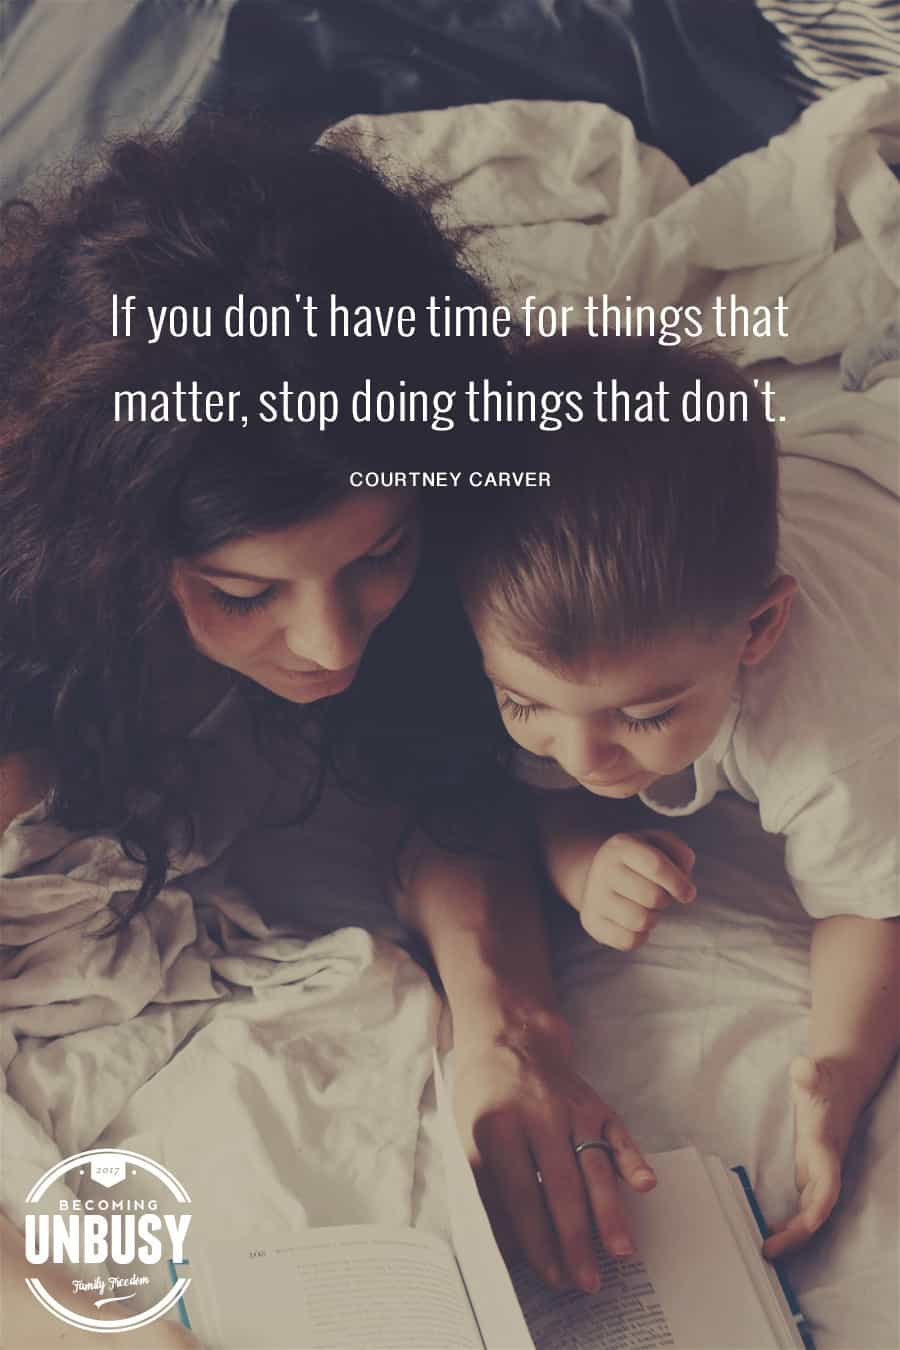 If you don't have time for things that matter, stop doing things that don't. -- 10 inspirational quotes about life that will help you focus on what's important #quotes #lifequotes #inspirationalquotes *Loving this collection of life quotes!